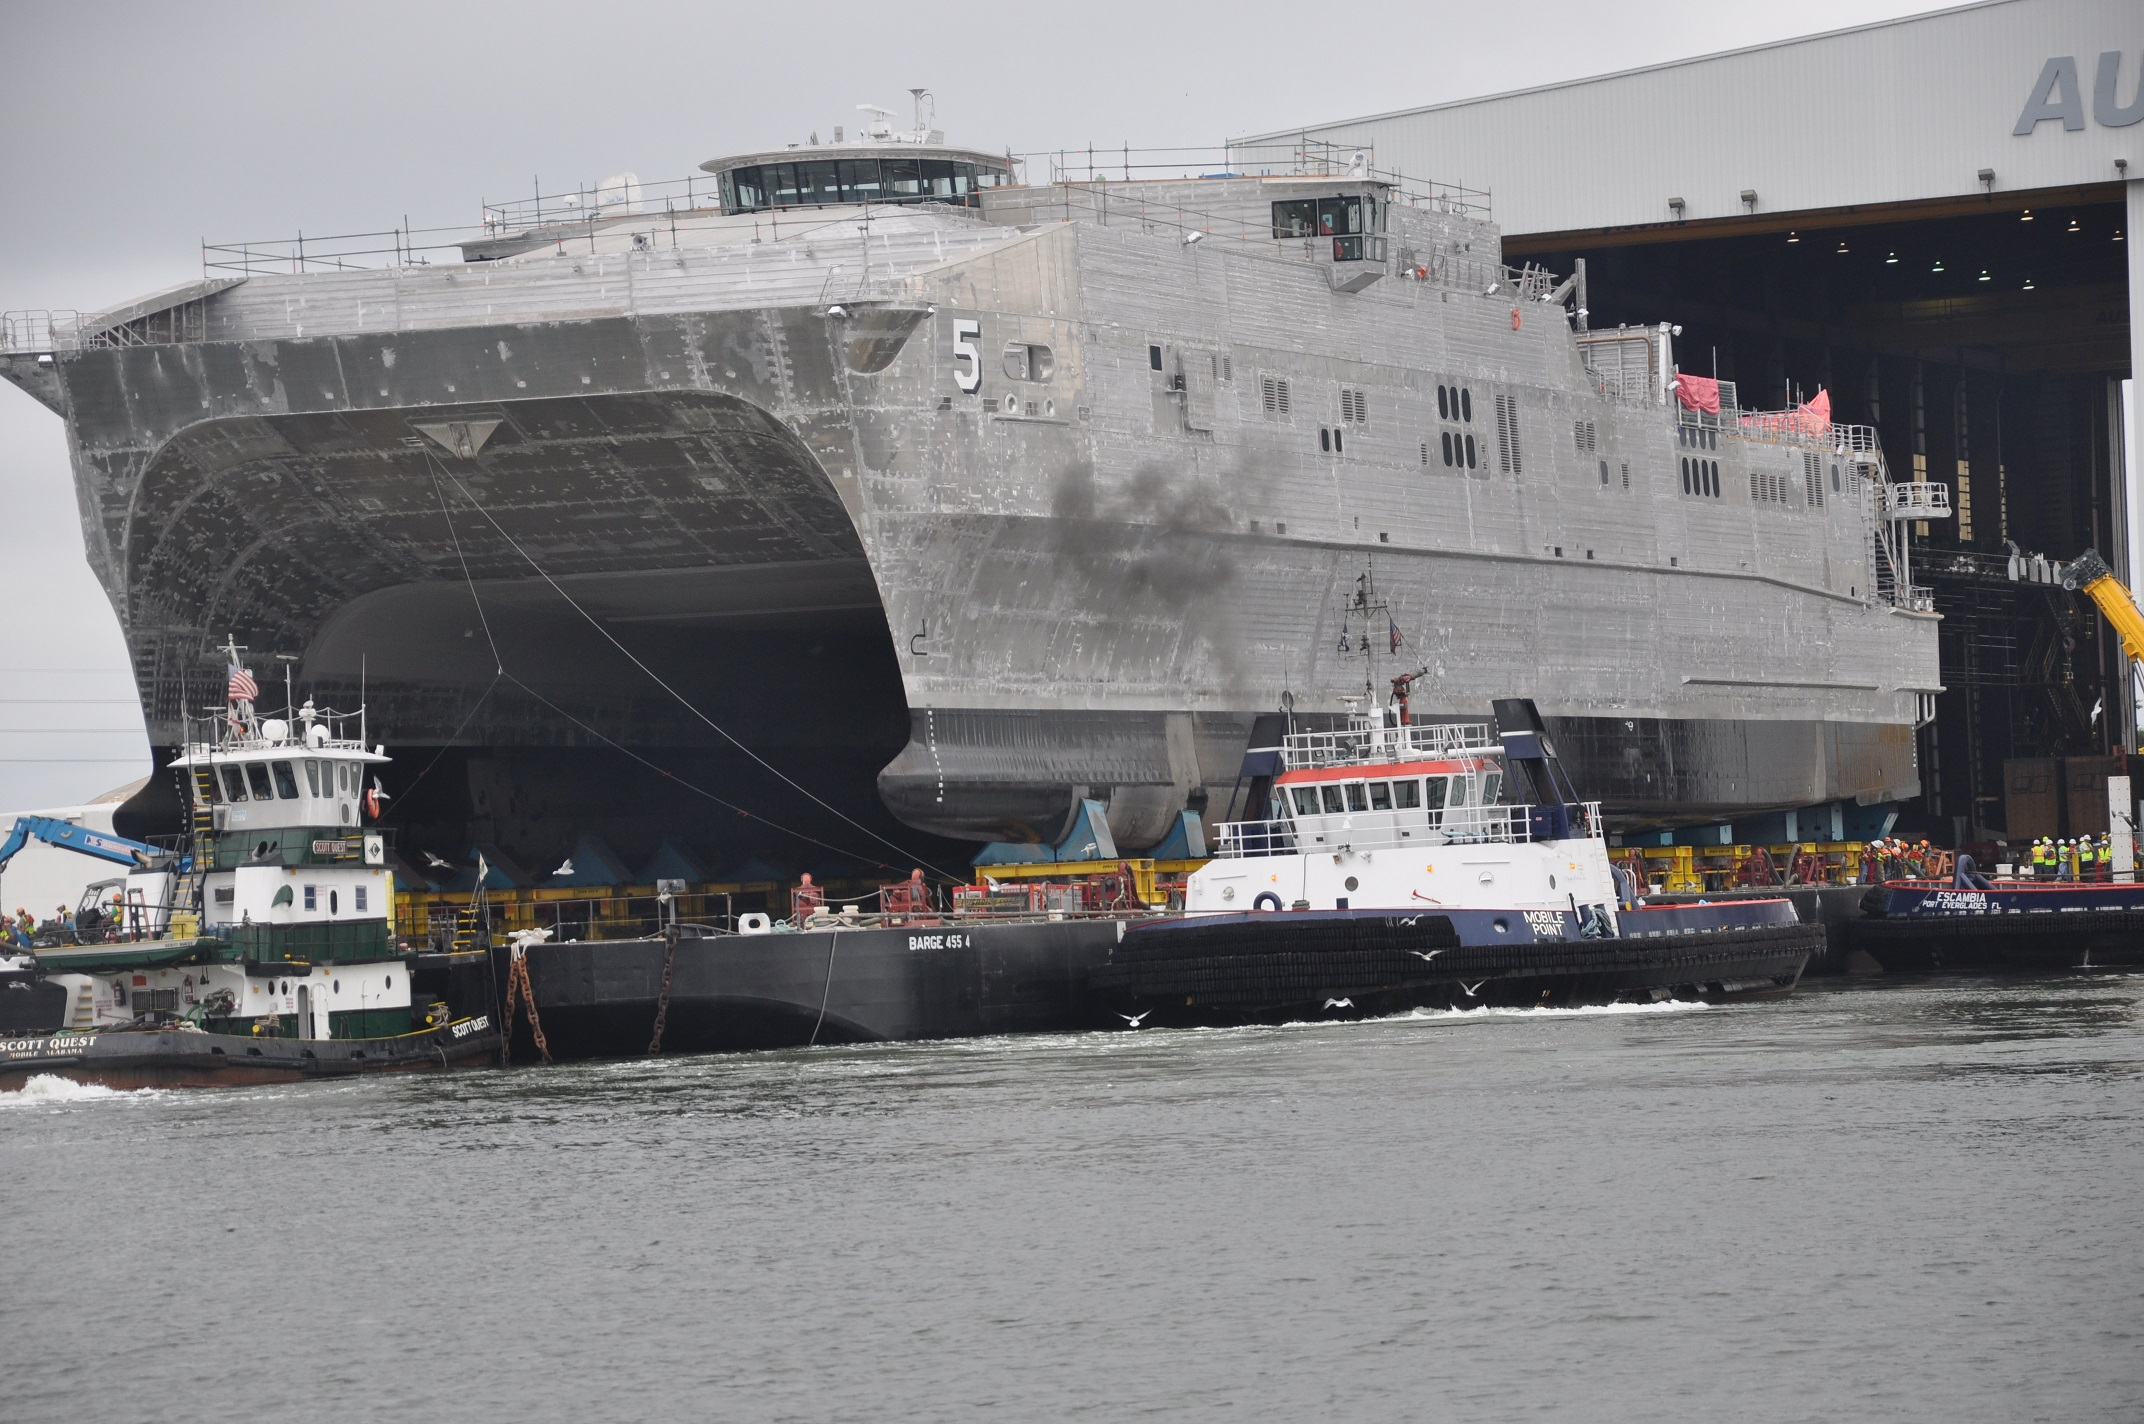 Joint High Speed Vessel (JHSV) - navires à grande vitesse USNS_Trenton_%28JHSV-5%29_is_rolled_out_at_Austal_USA_in_September_2014